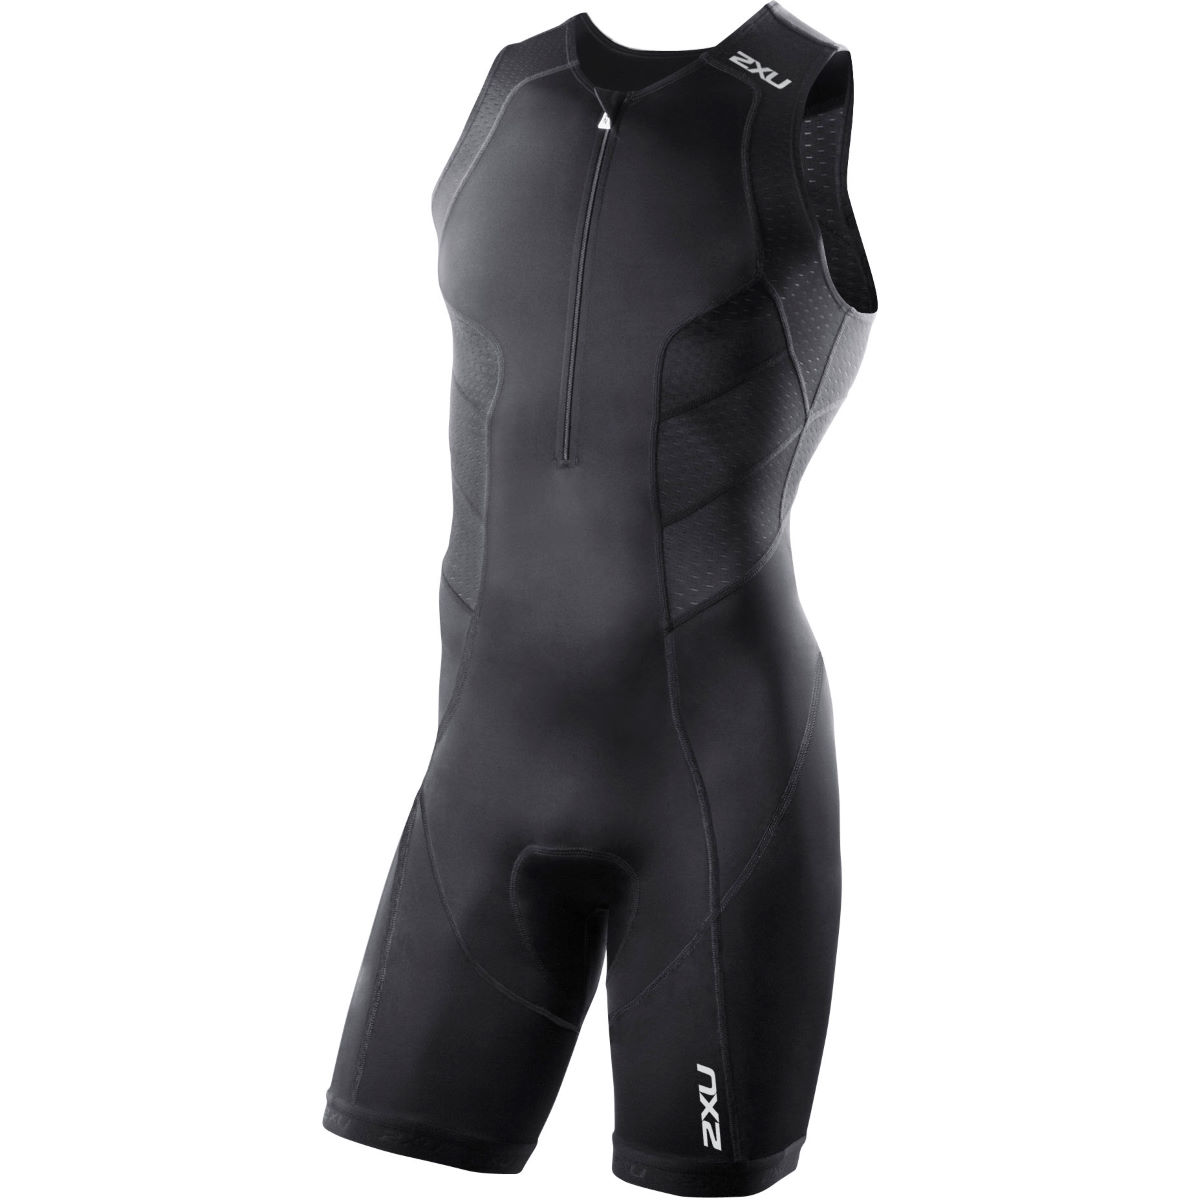 2XU Perform Trisuit